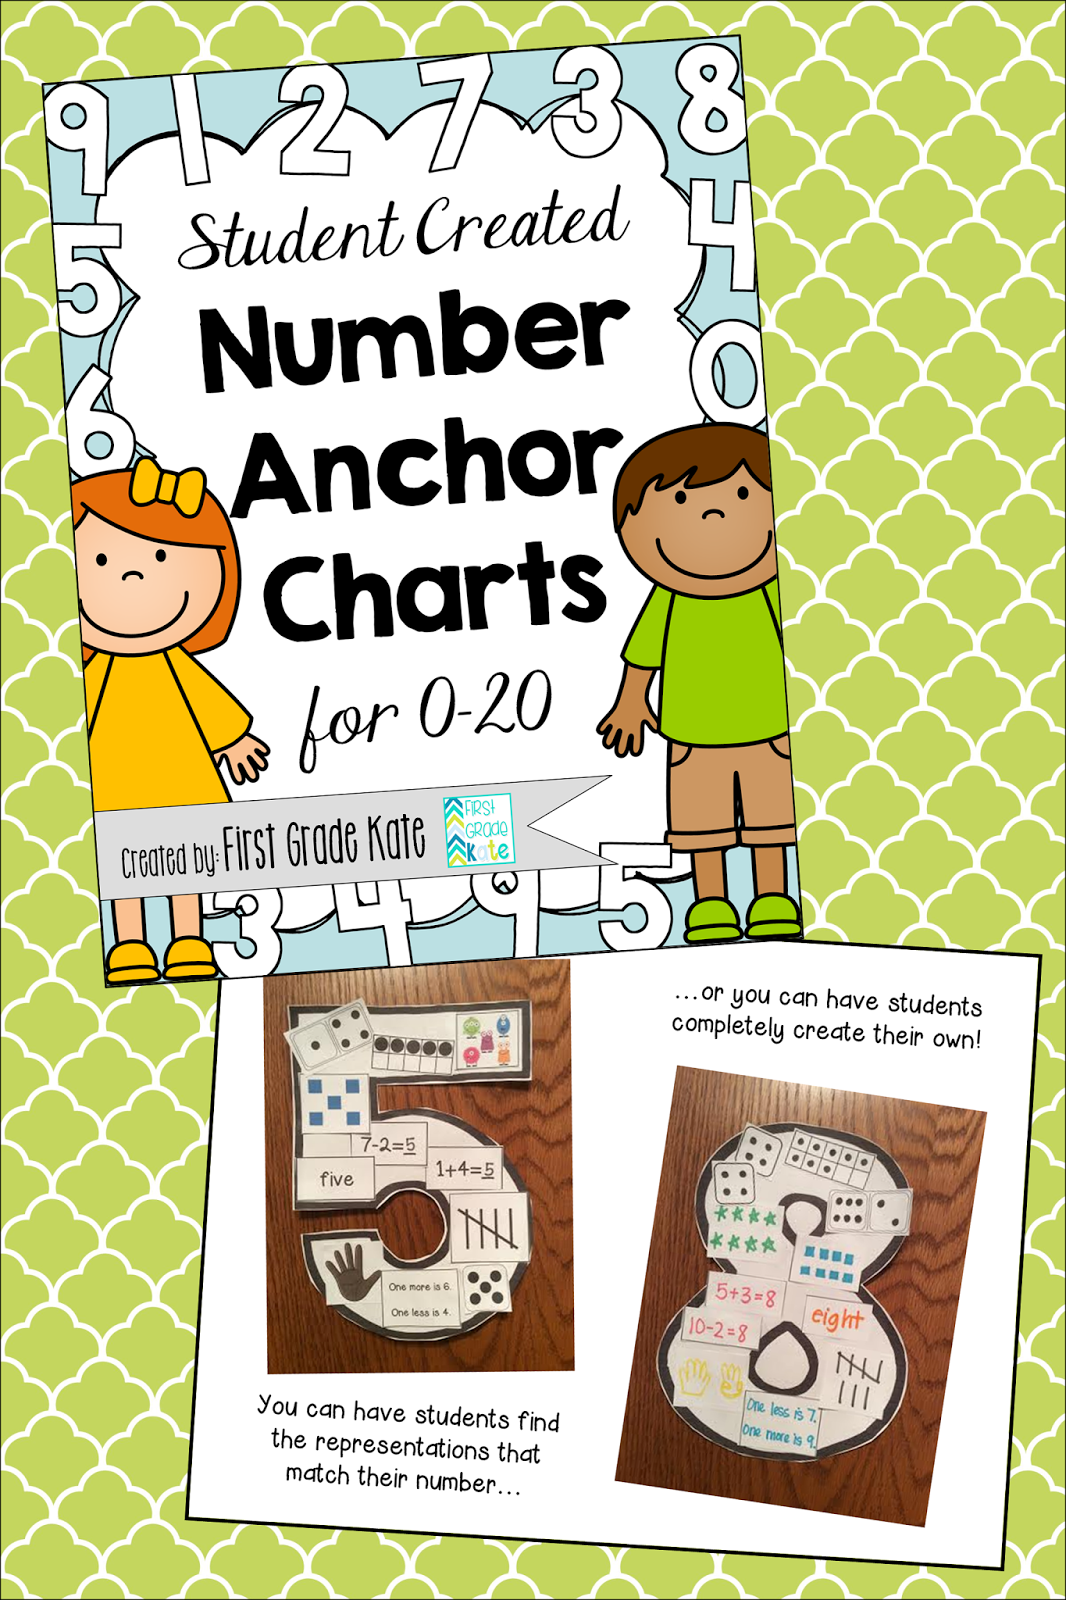 http://www.teacherspayteachers.com/Product/Student-Created-Number-Anchor-Charts-0-20-1261642